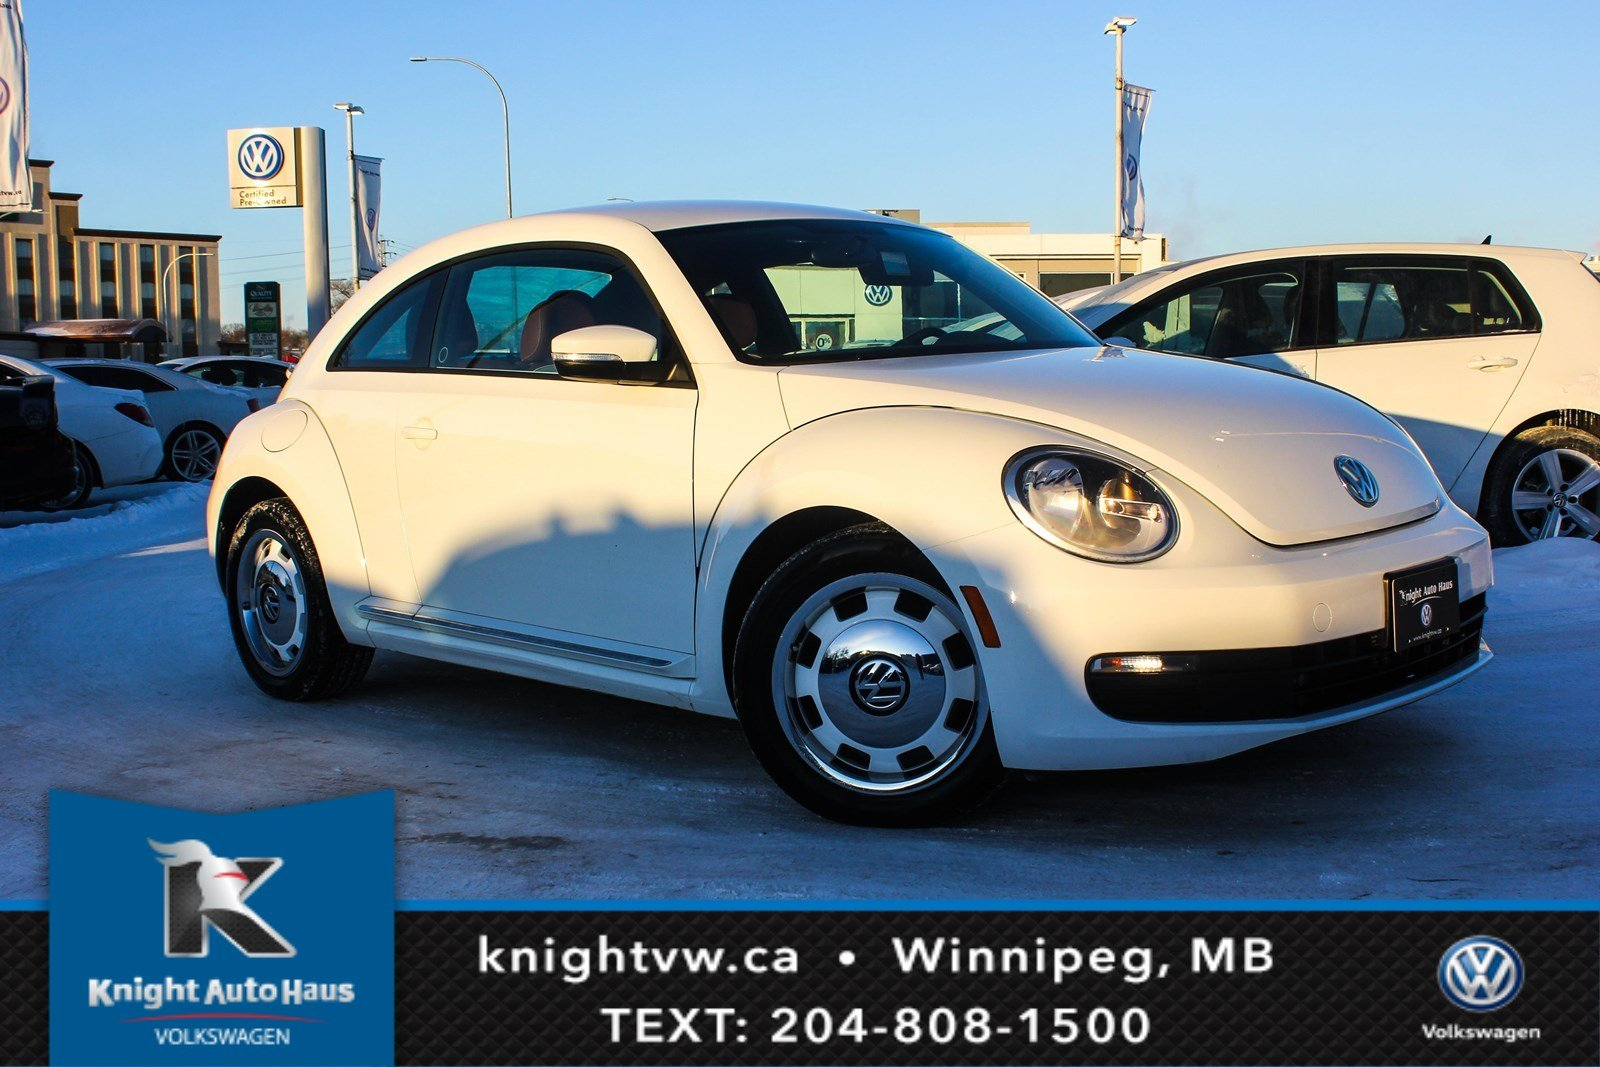 Certified Pre-Owned 2016 Volkswagen Beetle Coupe Classic w/Nav 0.9% Financing Available OAC.